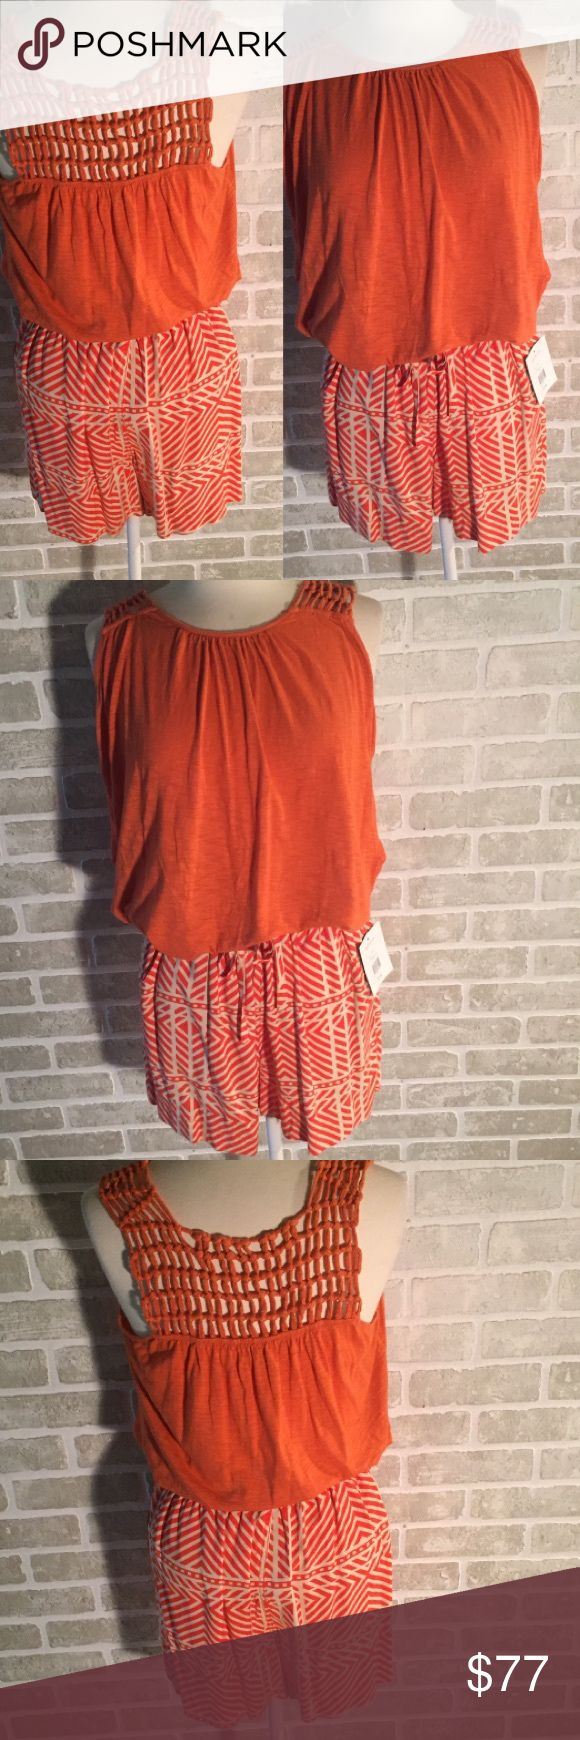 🎉1 Hour Sale🎉NWT Orange/Cream Shorts Perfect for Social Event, UT Football Game, Cookout, or Dinner Date Shorts. Shorts